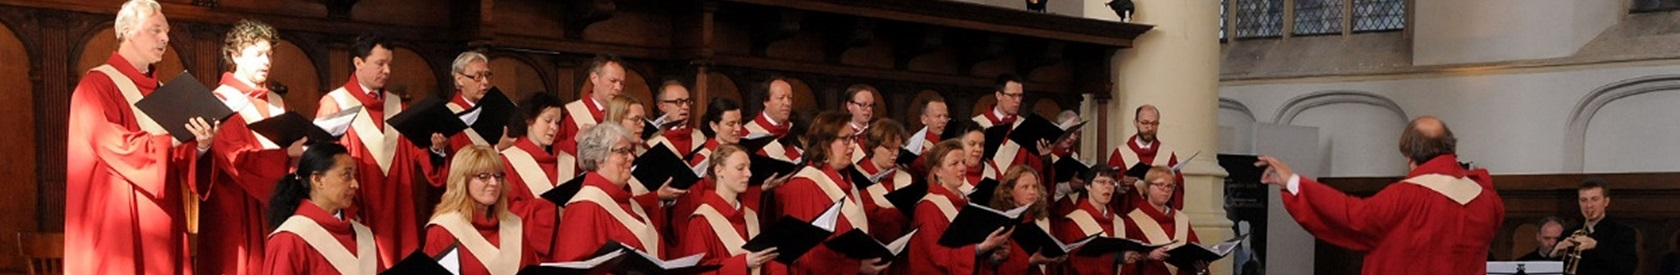 Evensongs en cantatediensten